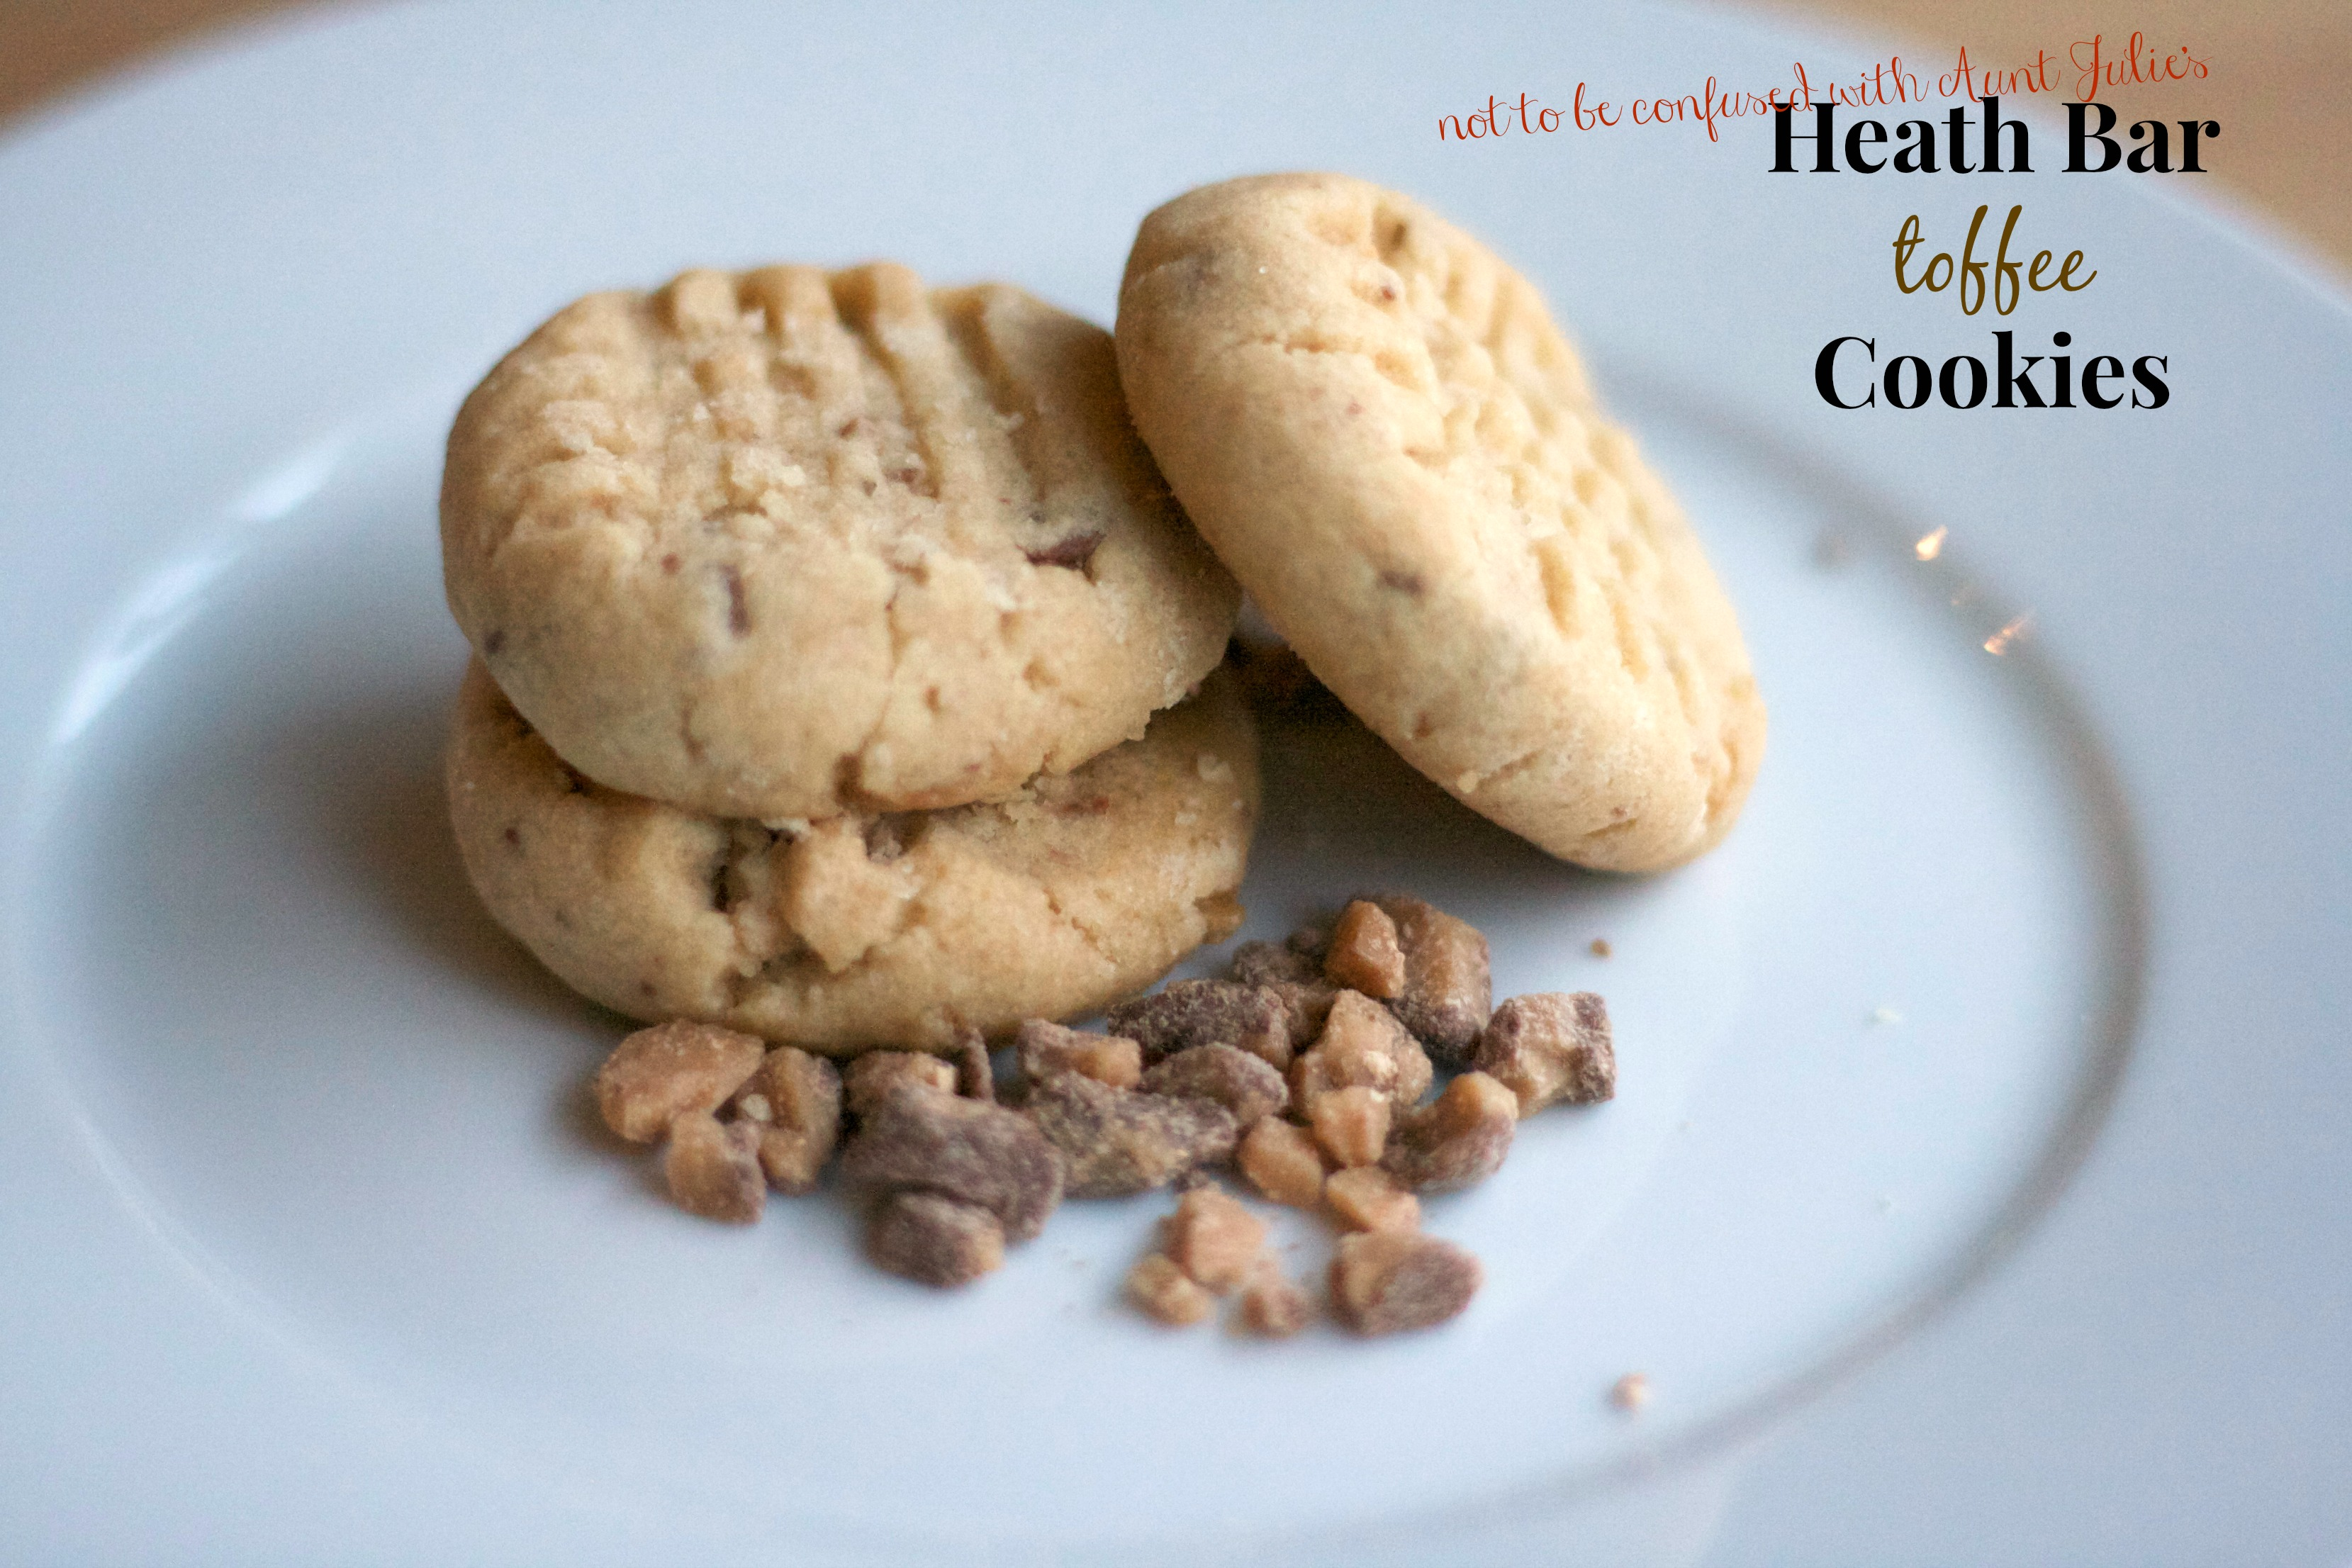 ... cookies 'Not to be confused with Aunt Julie's Heath Bar Cookies